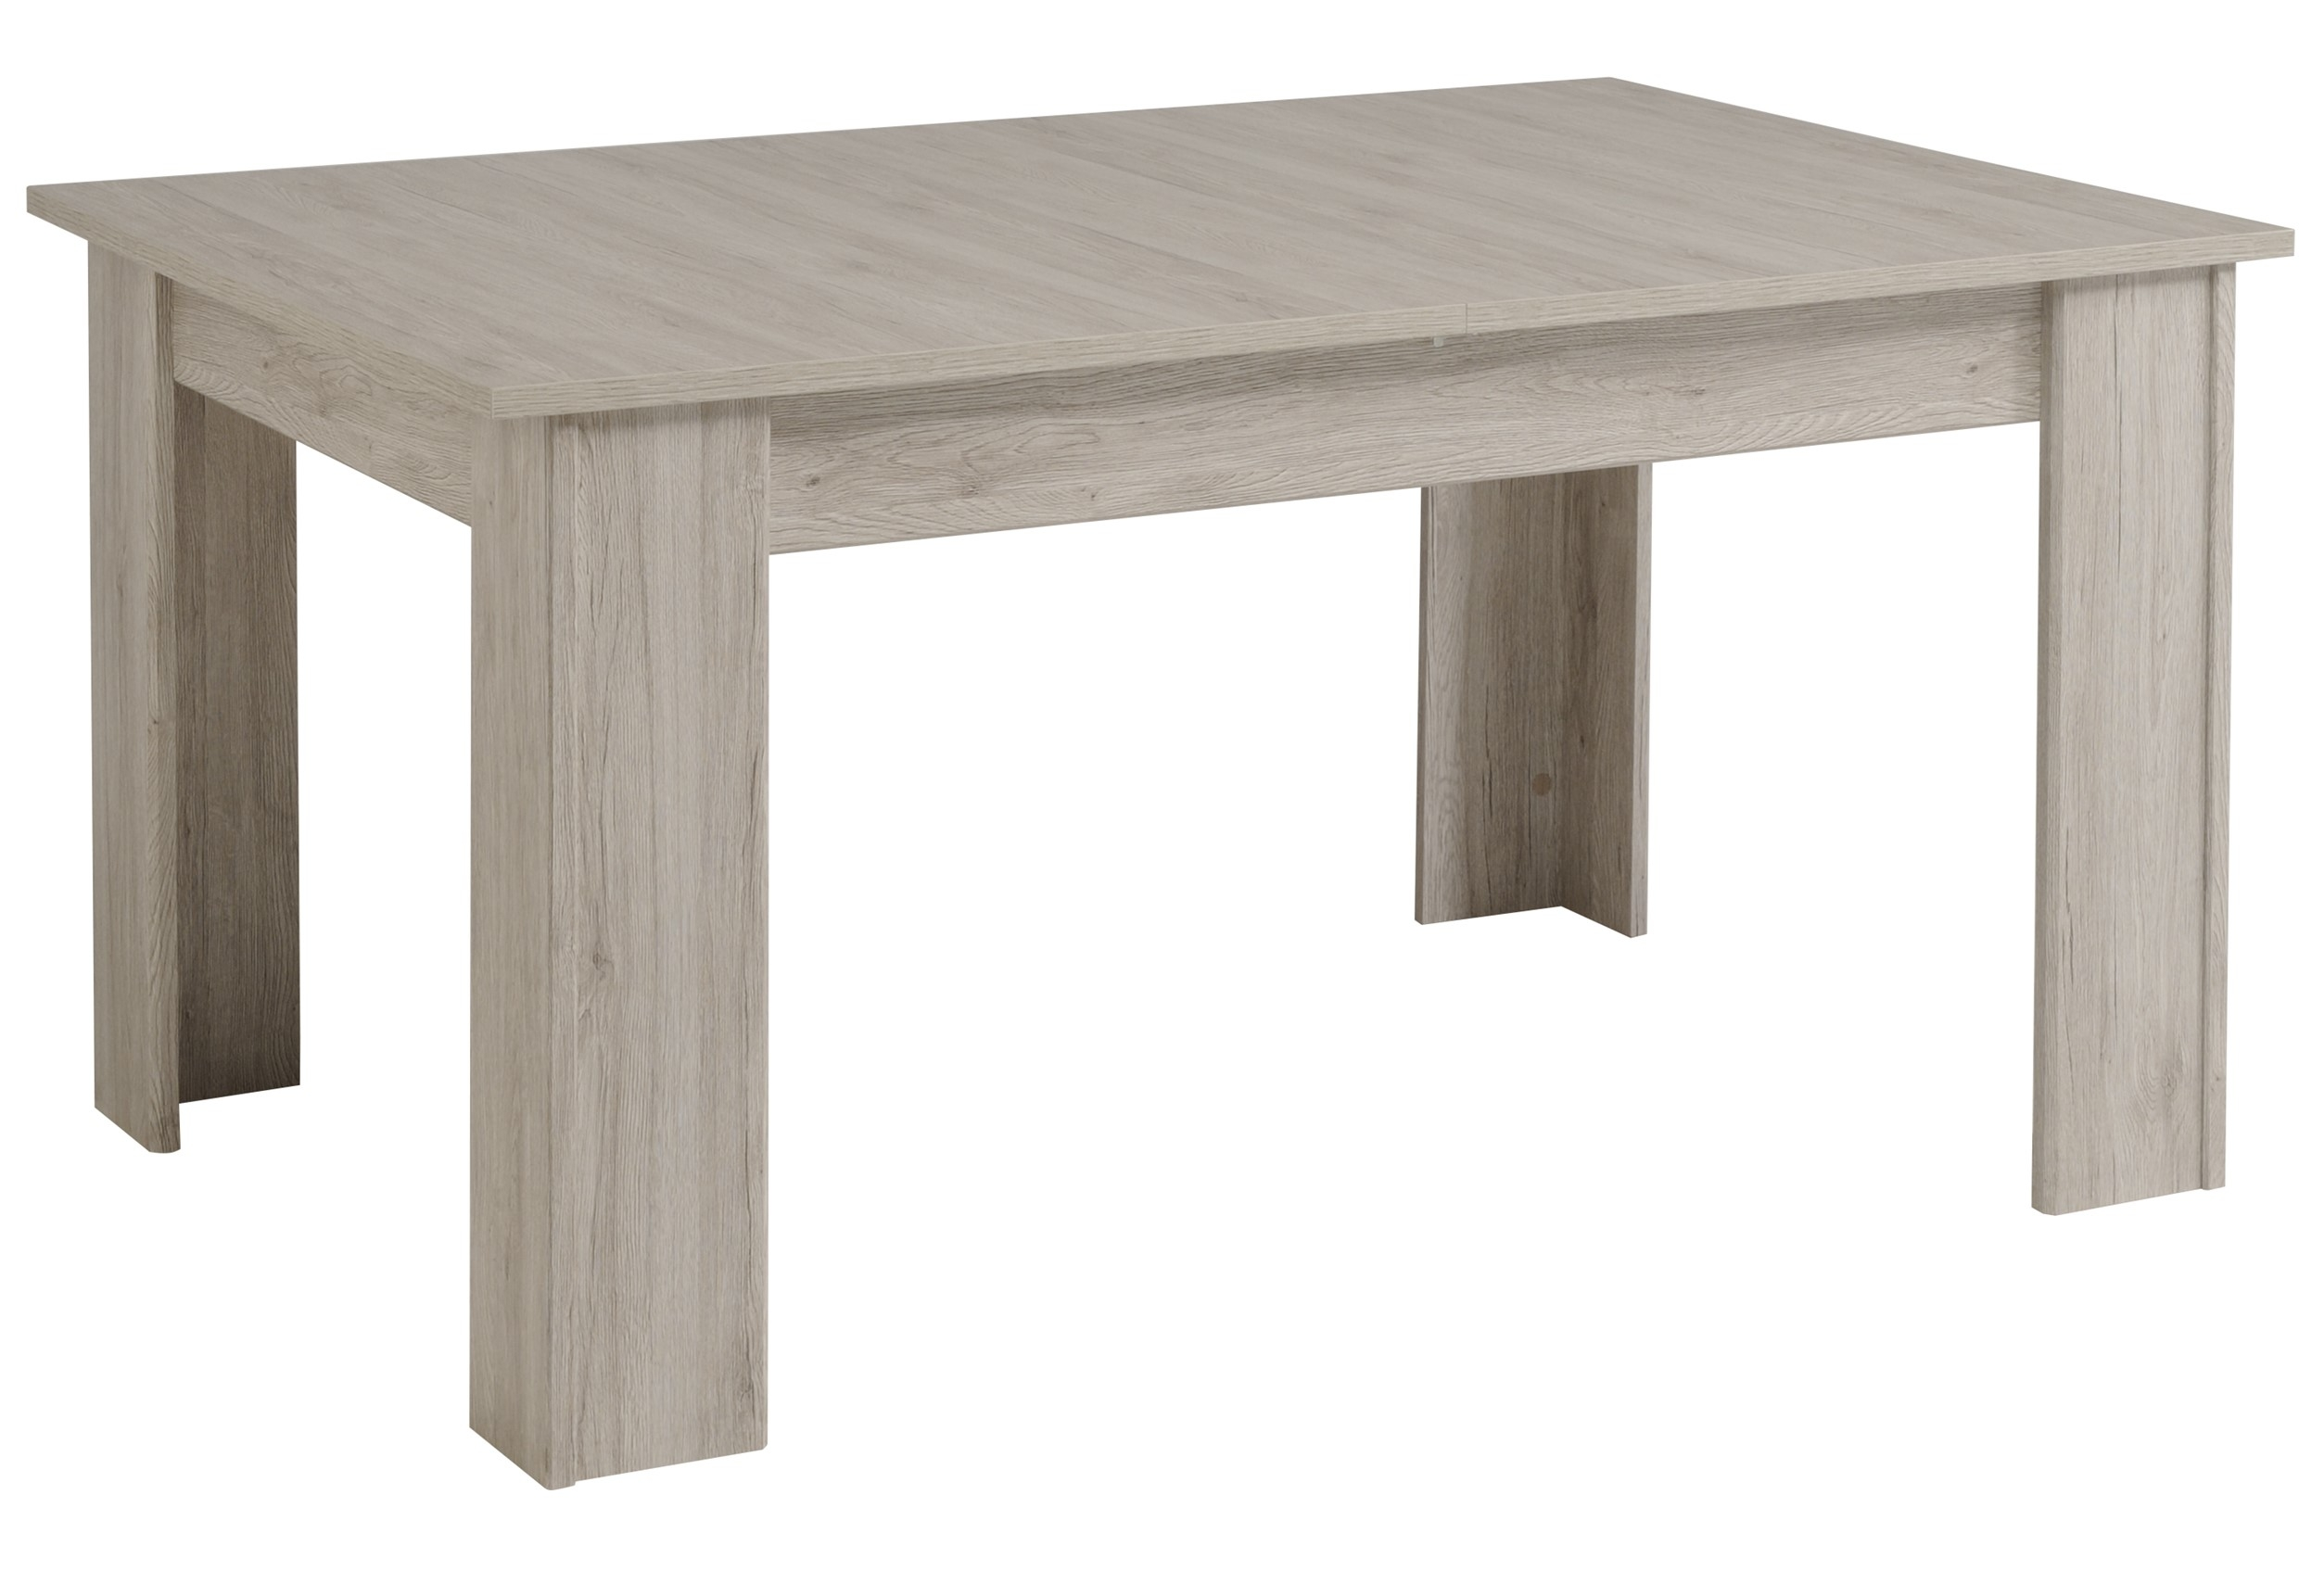 Table manger extensible ch ne gris muleo 155 190 cm for Table extensible gris et bois